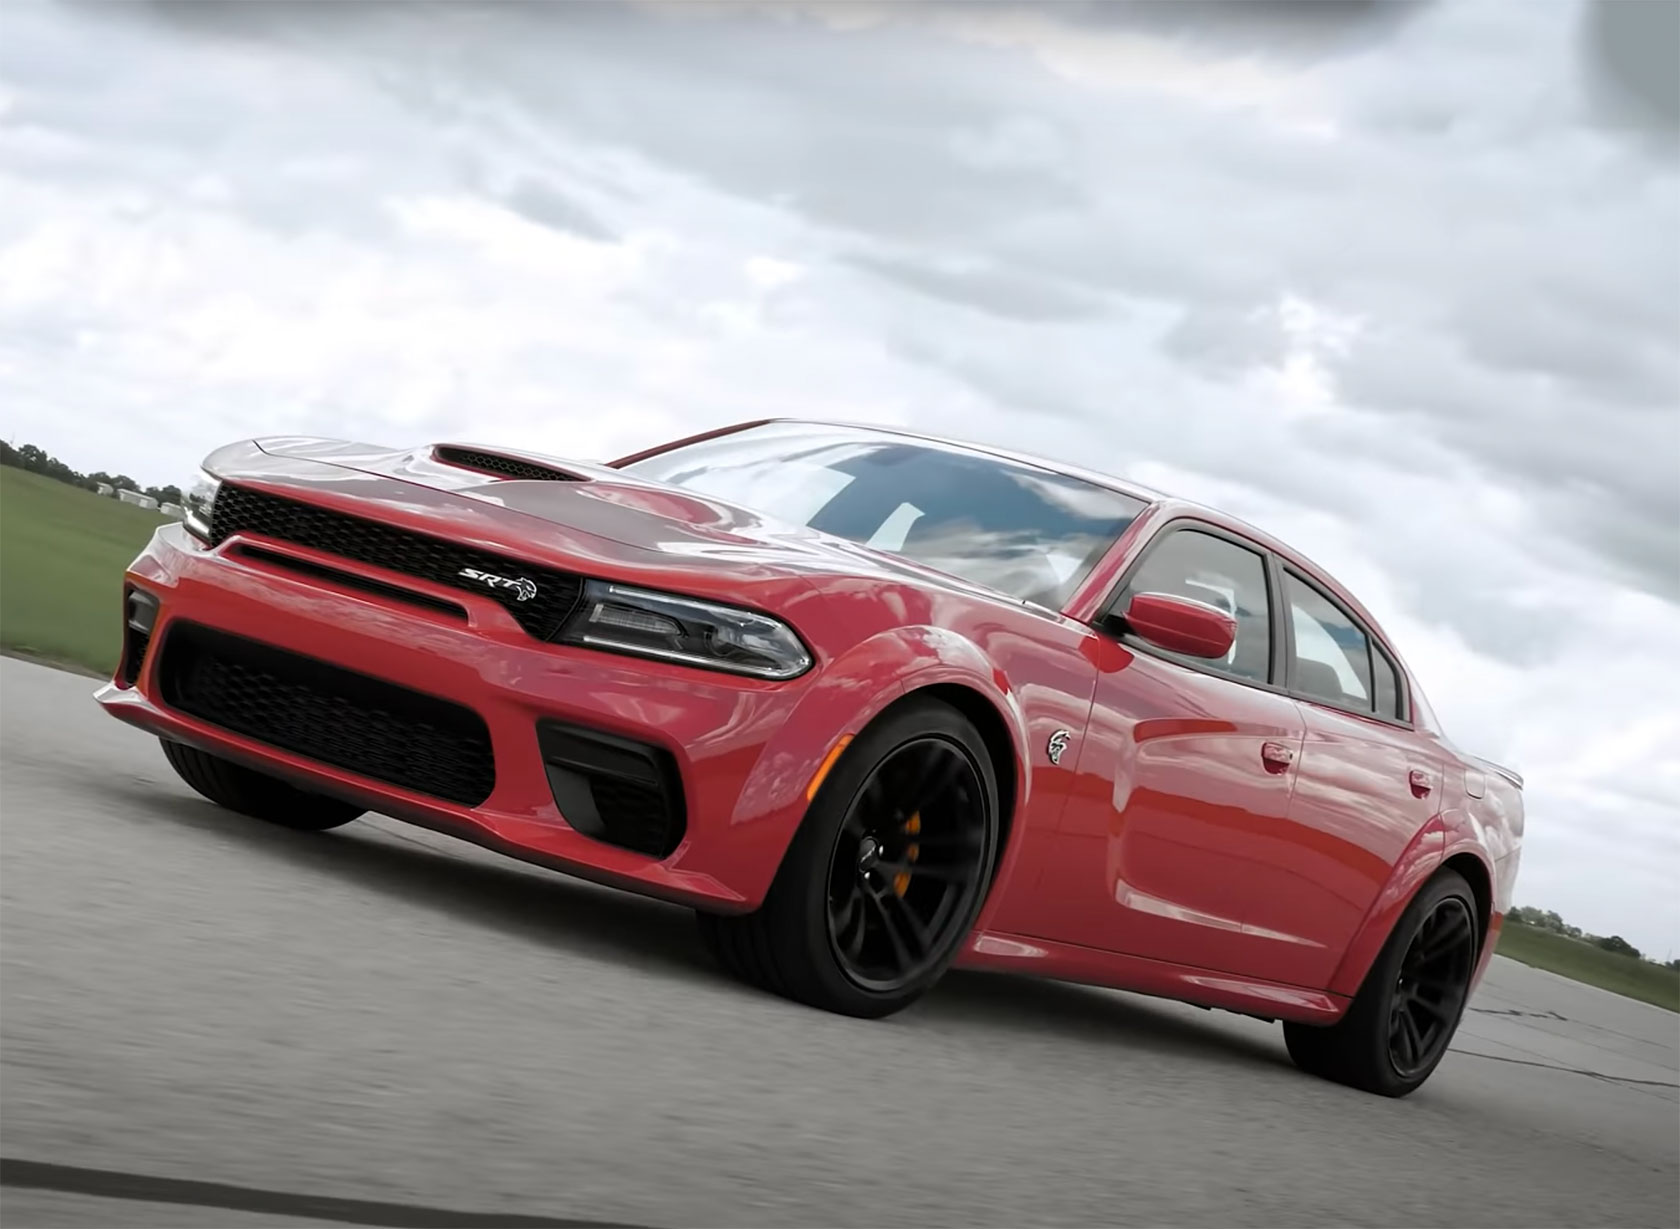 HPE1000 Dodge Charger Hellcat Widebody Hennessey Performance